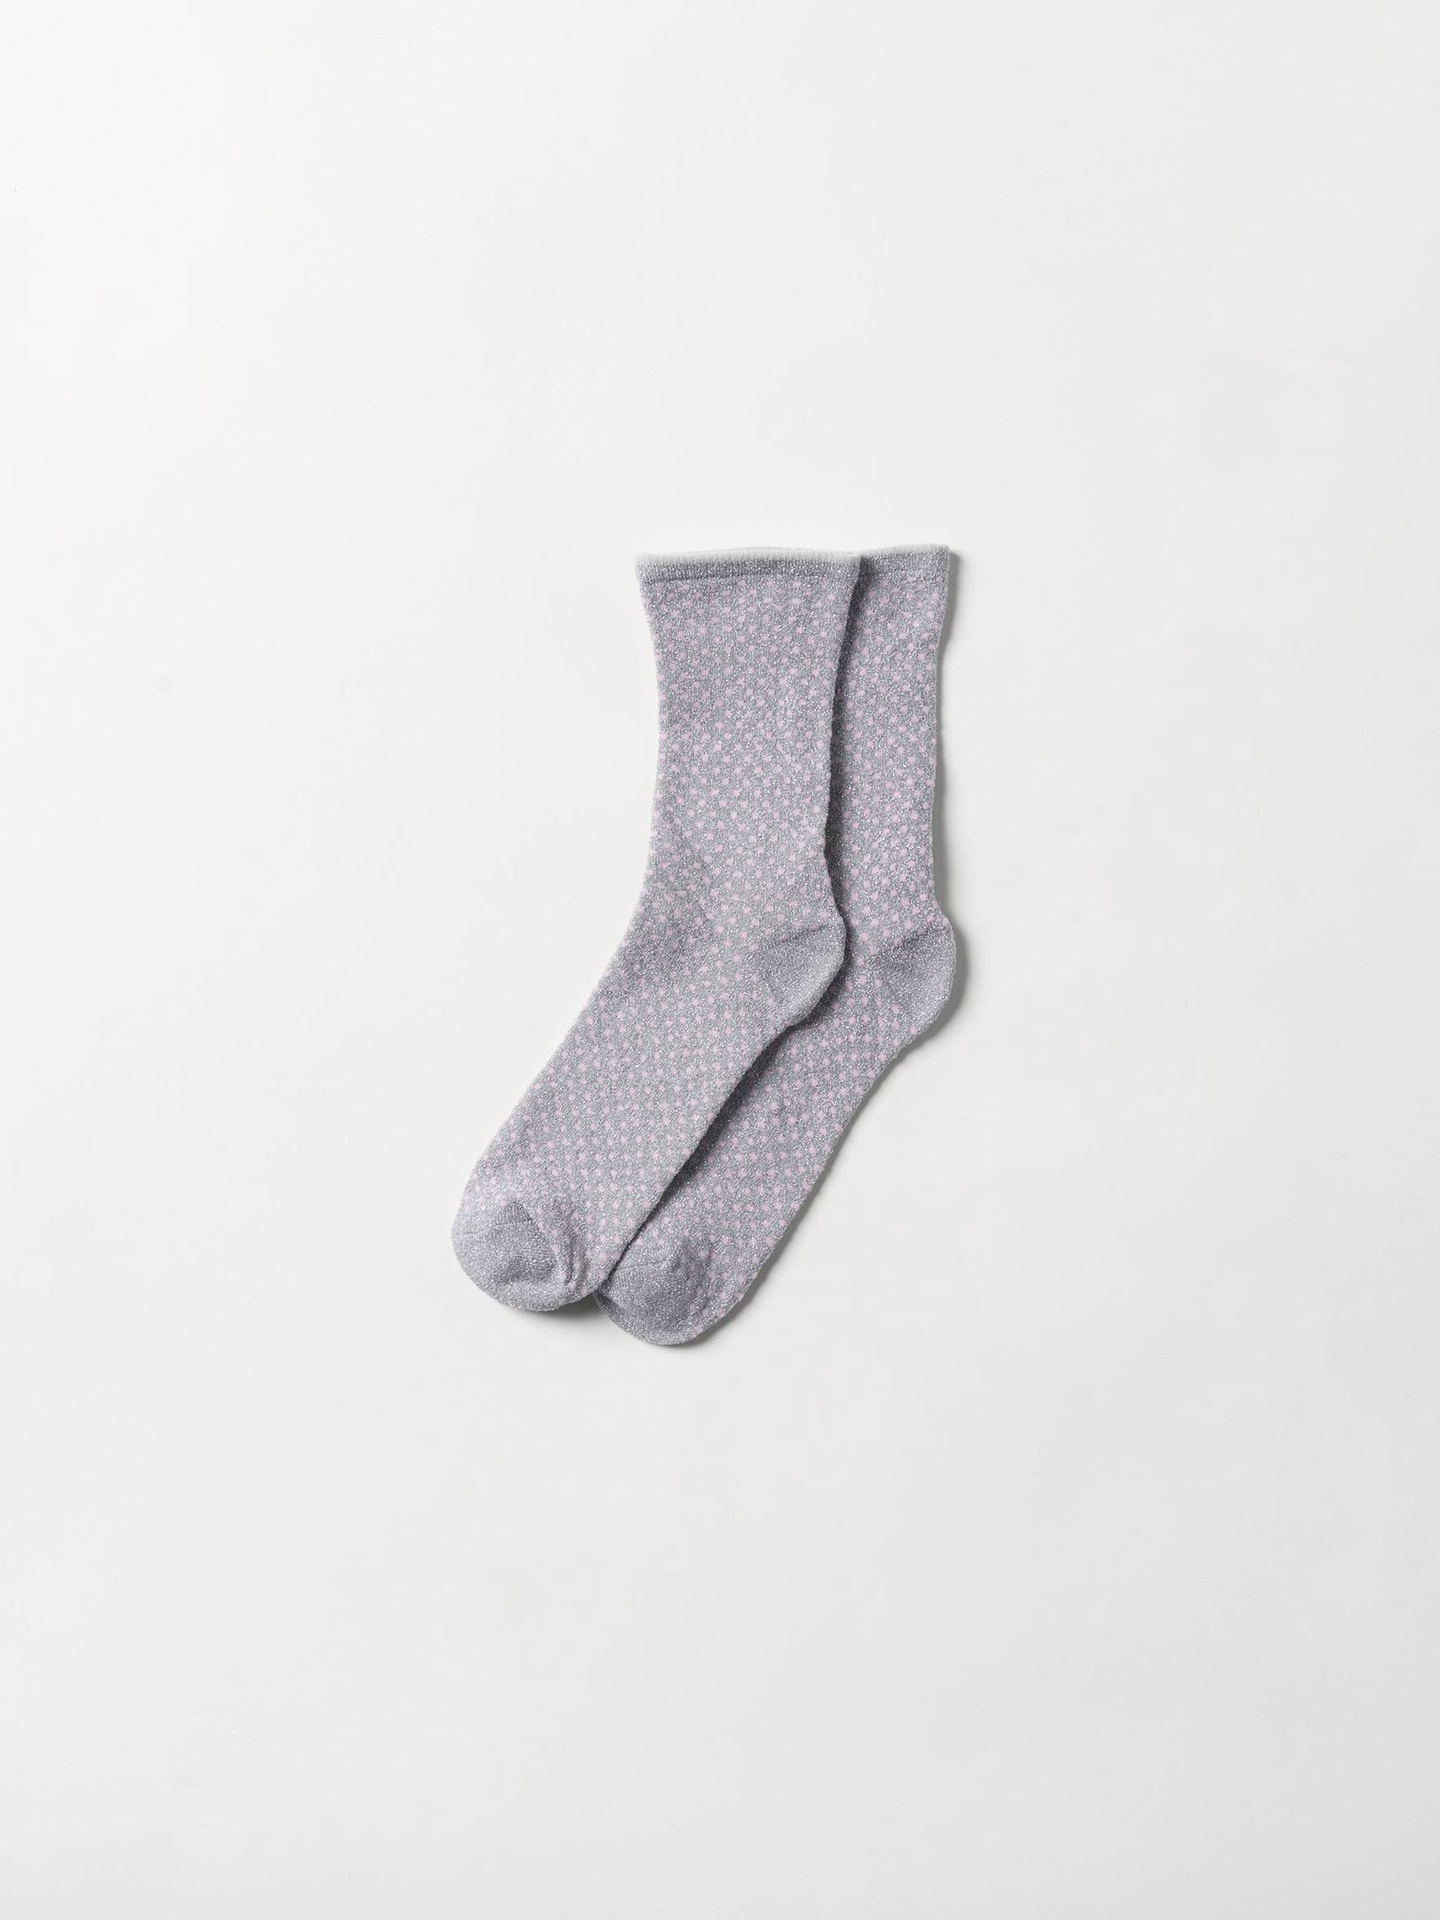 Dina Small Dots Socks